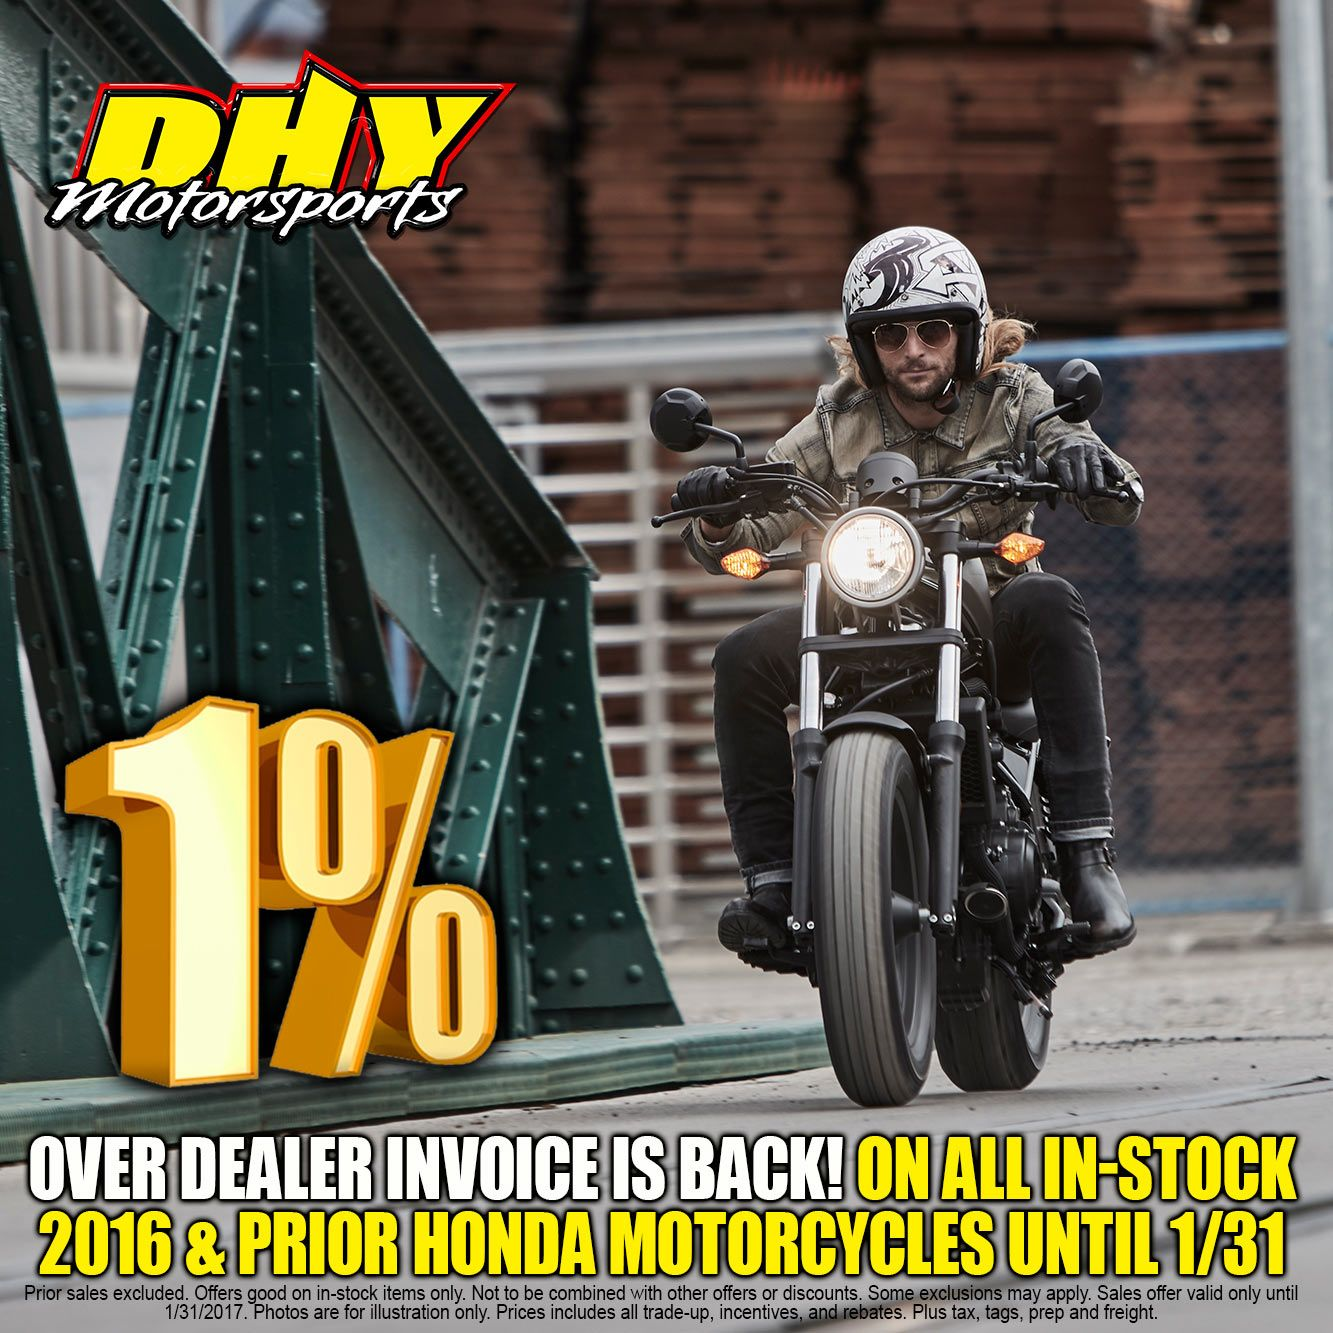 1 over dealer invoice is back at dhymotorsports on all